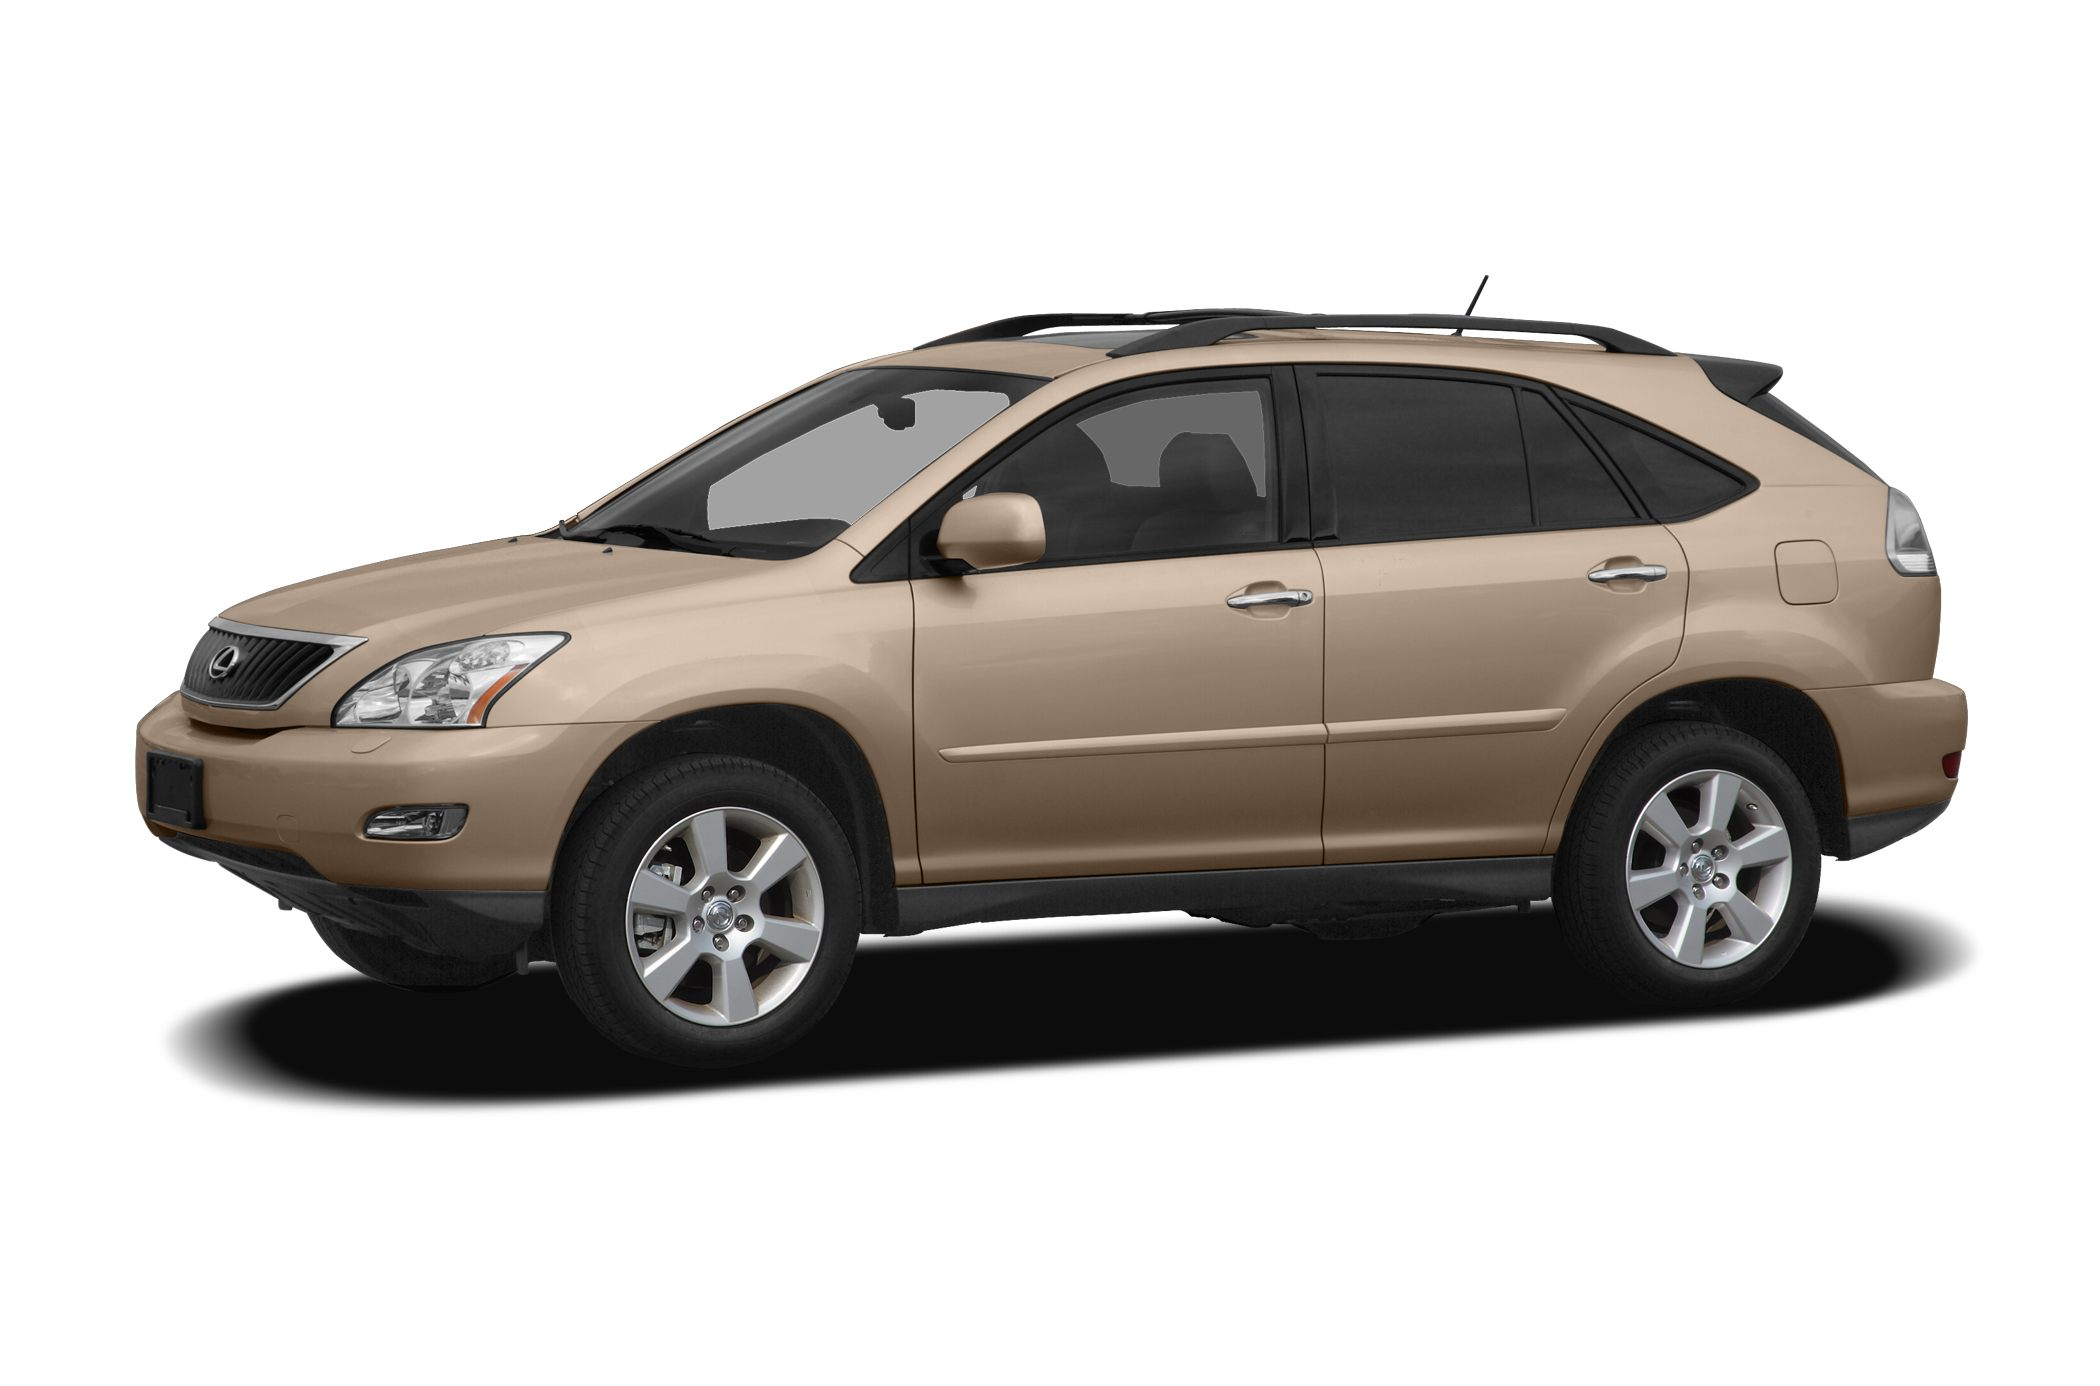 2009 Lexus RX 350 SUV for sale in Santa Fe for $19,300 with 92,125 miles